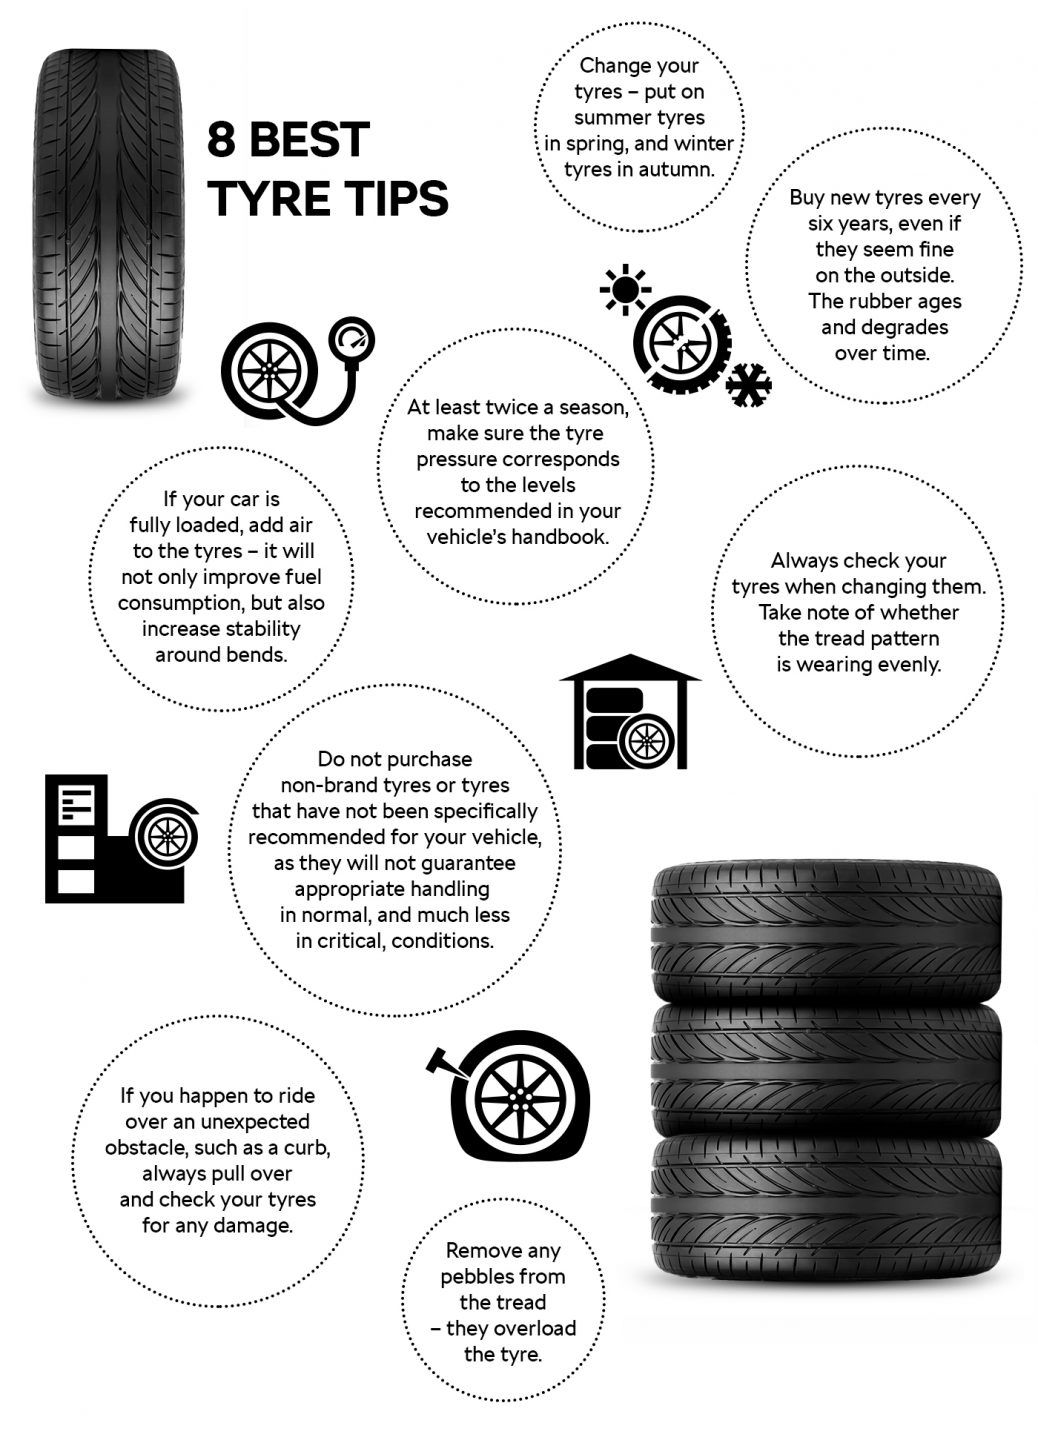 8 best tyre tips